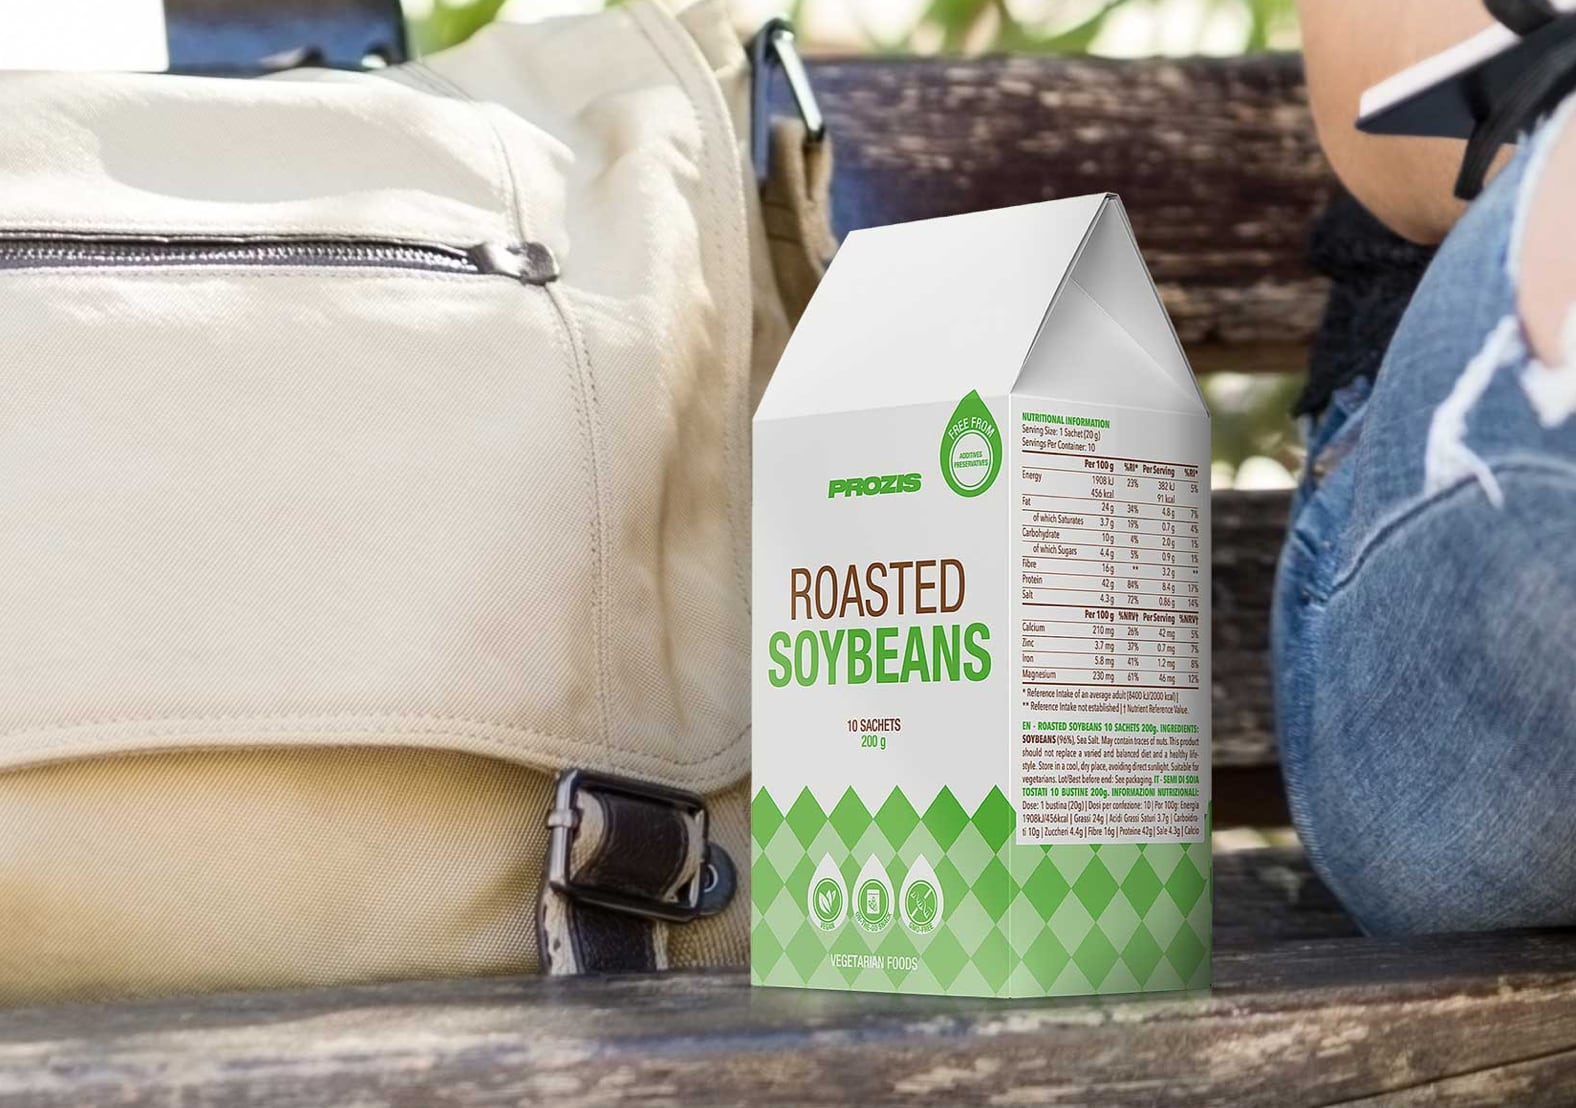 Roasted Soybean 10 Sachets